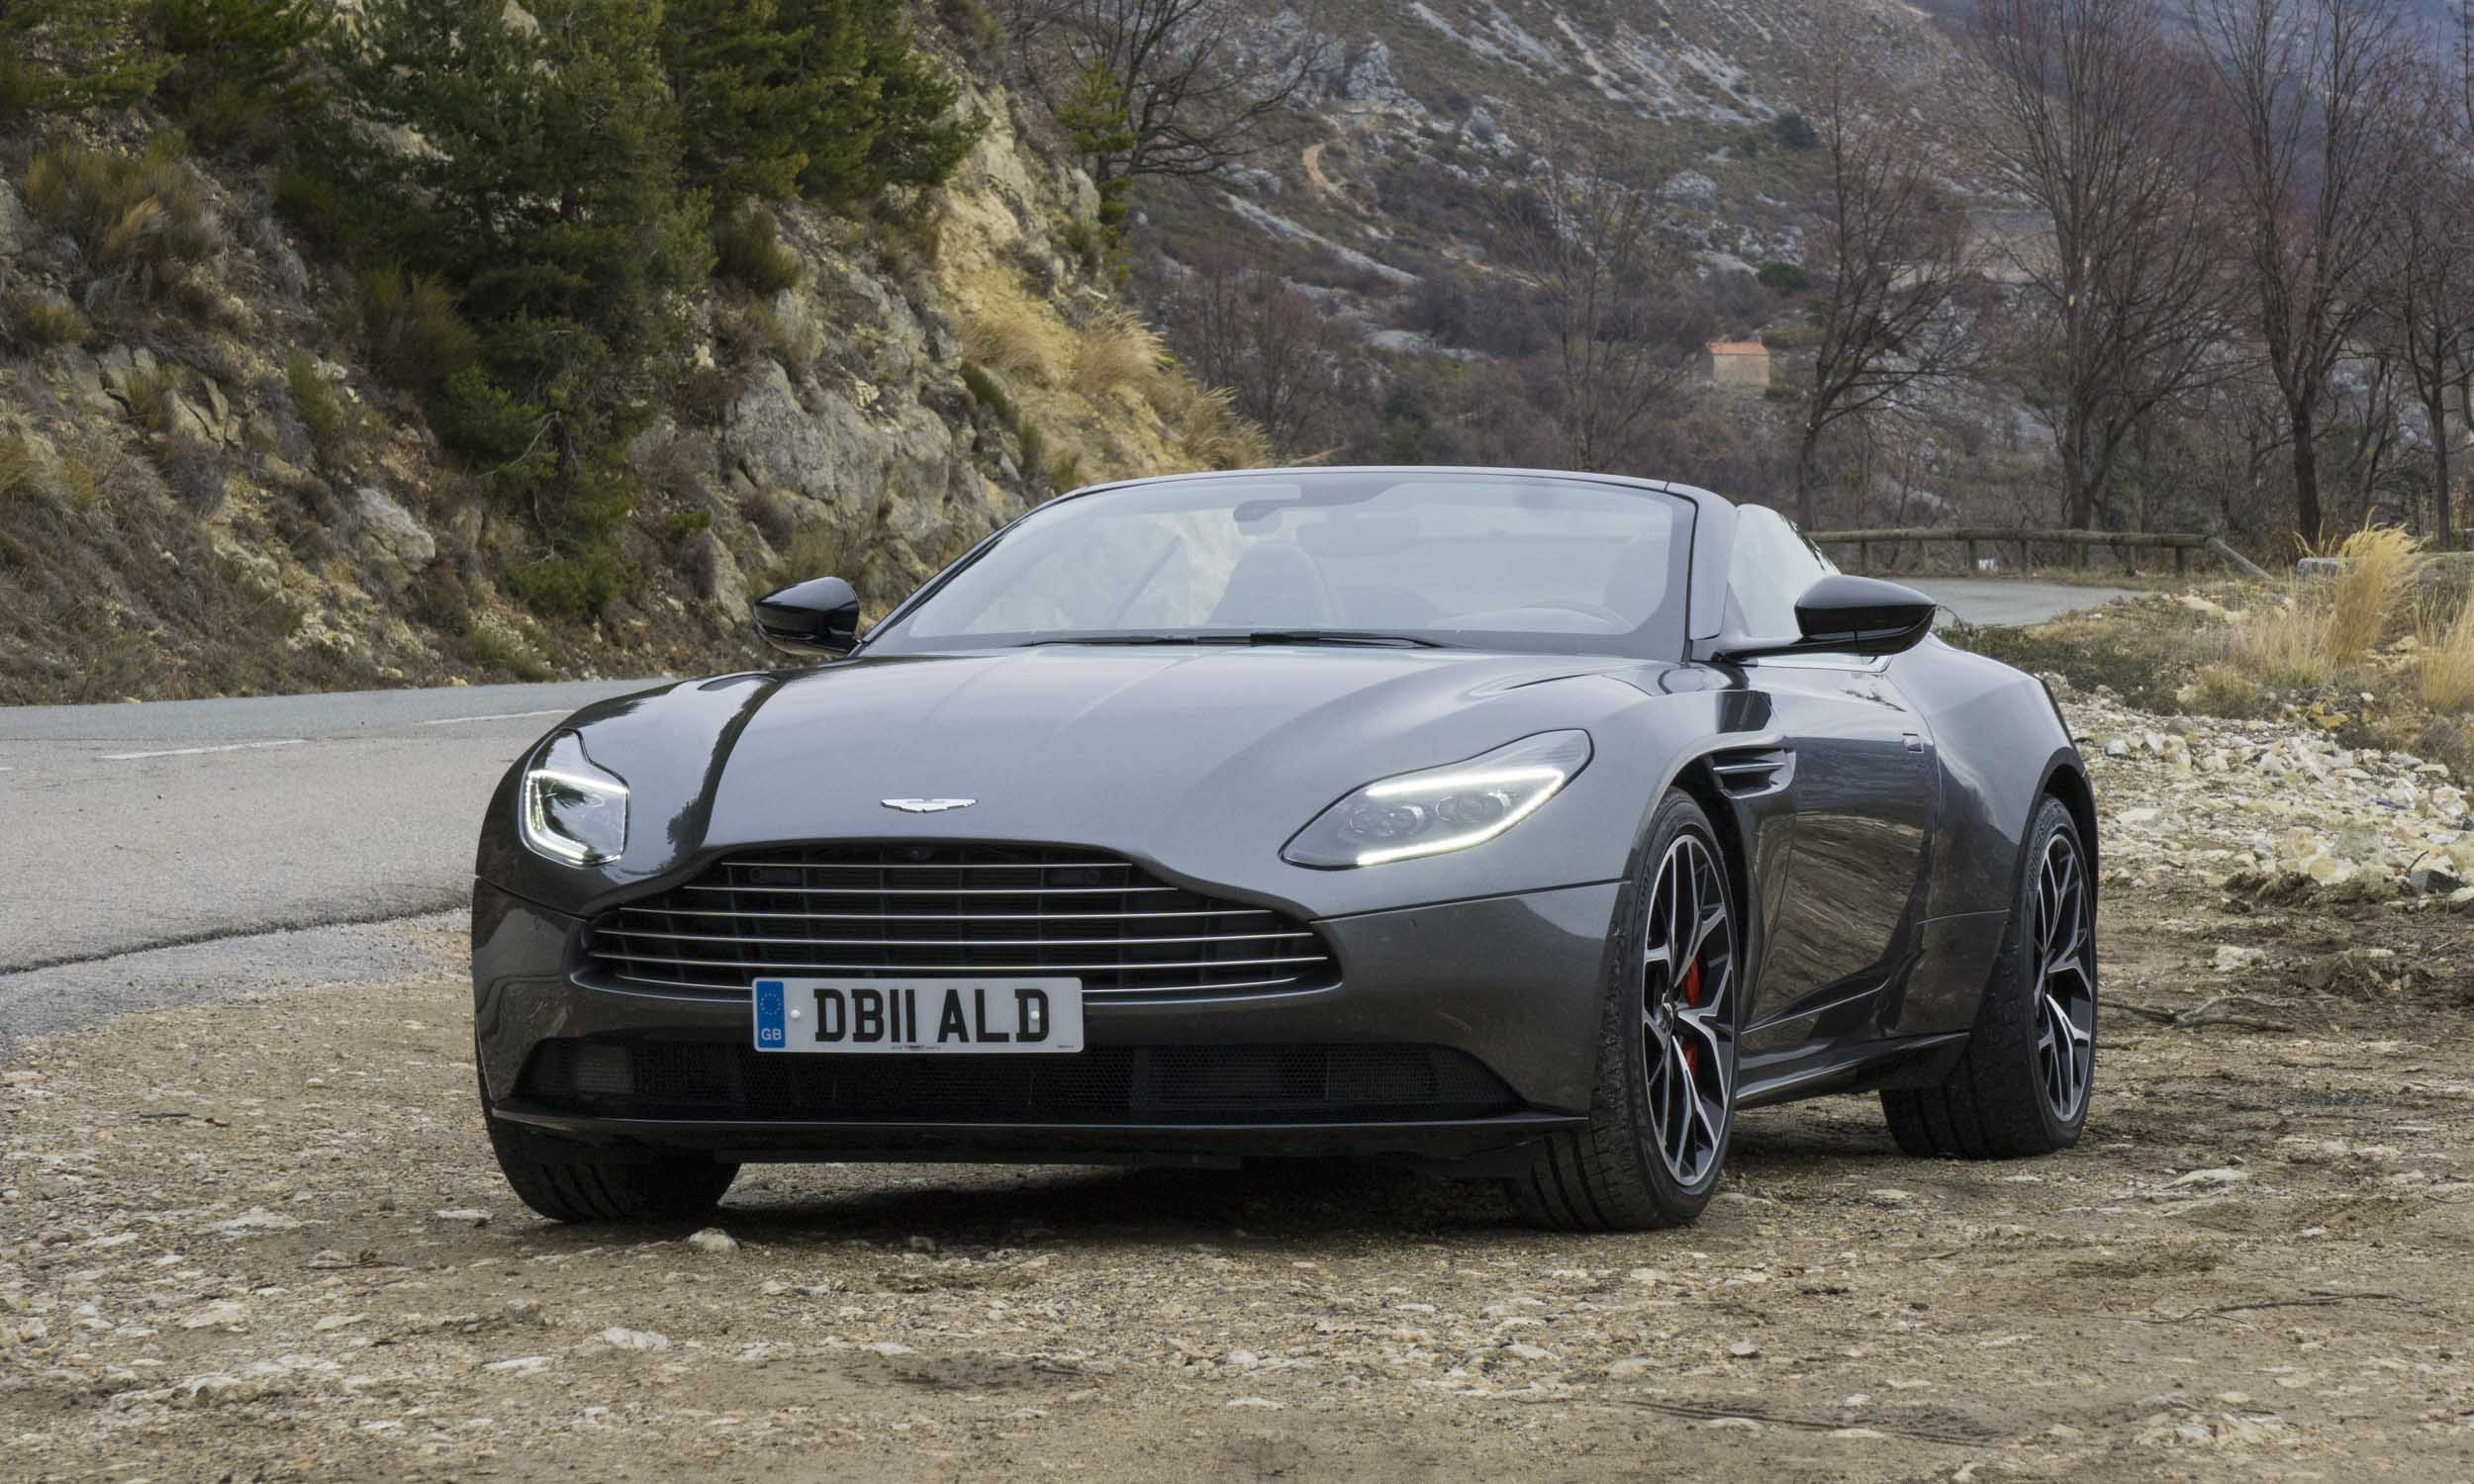 2019 Aston Martin Db11 Volante First Drive Review Autonxt